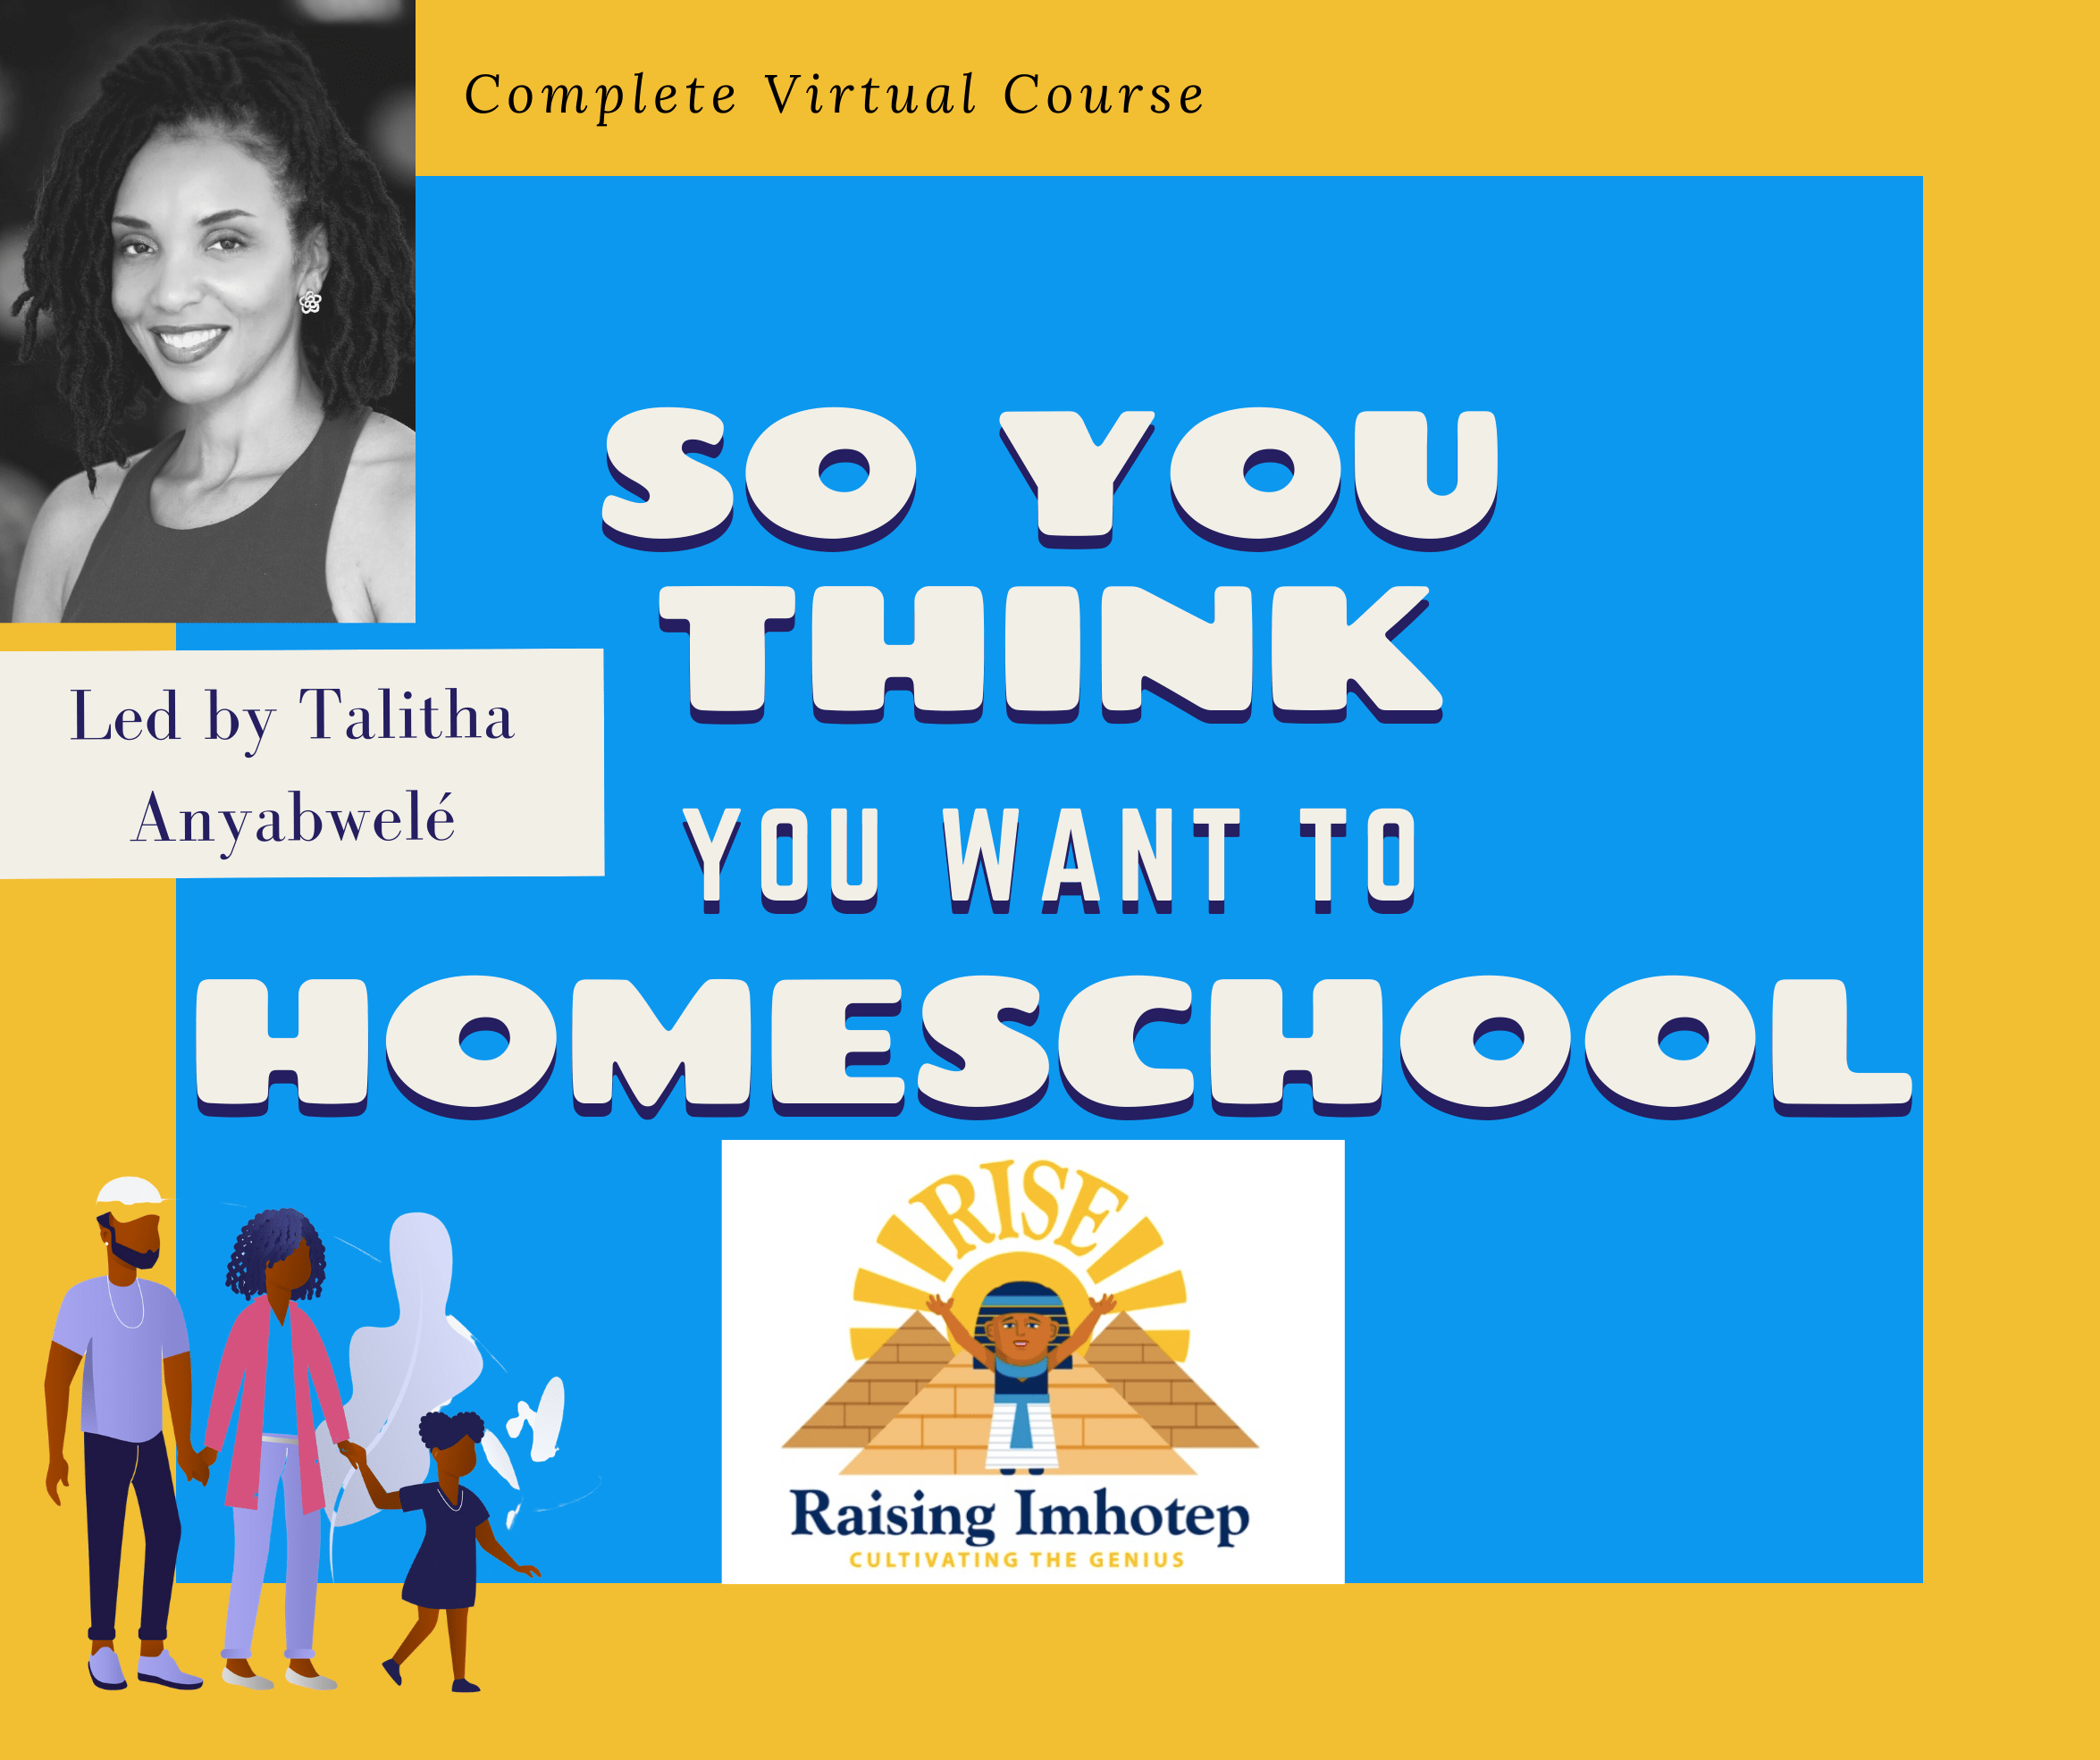 So You Think You Want To Homeschool Course